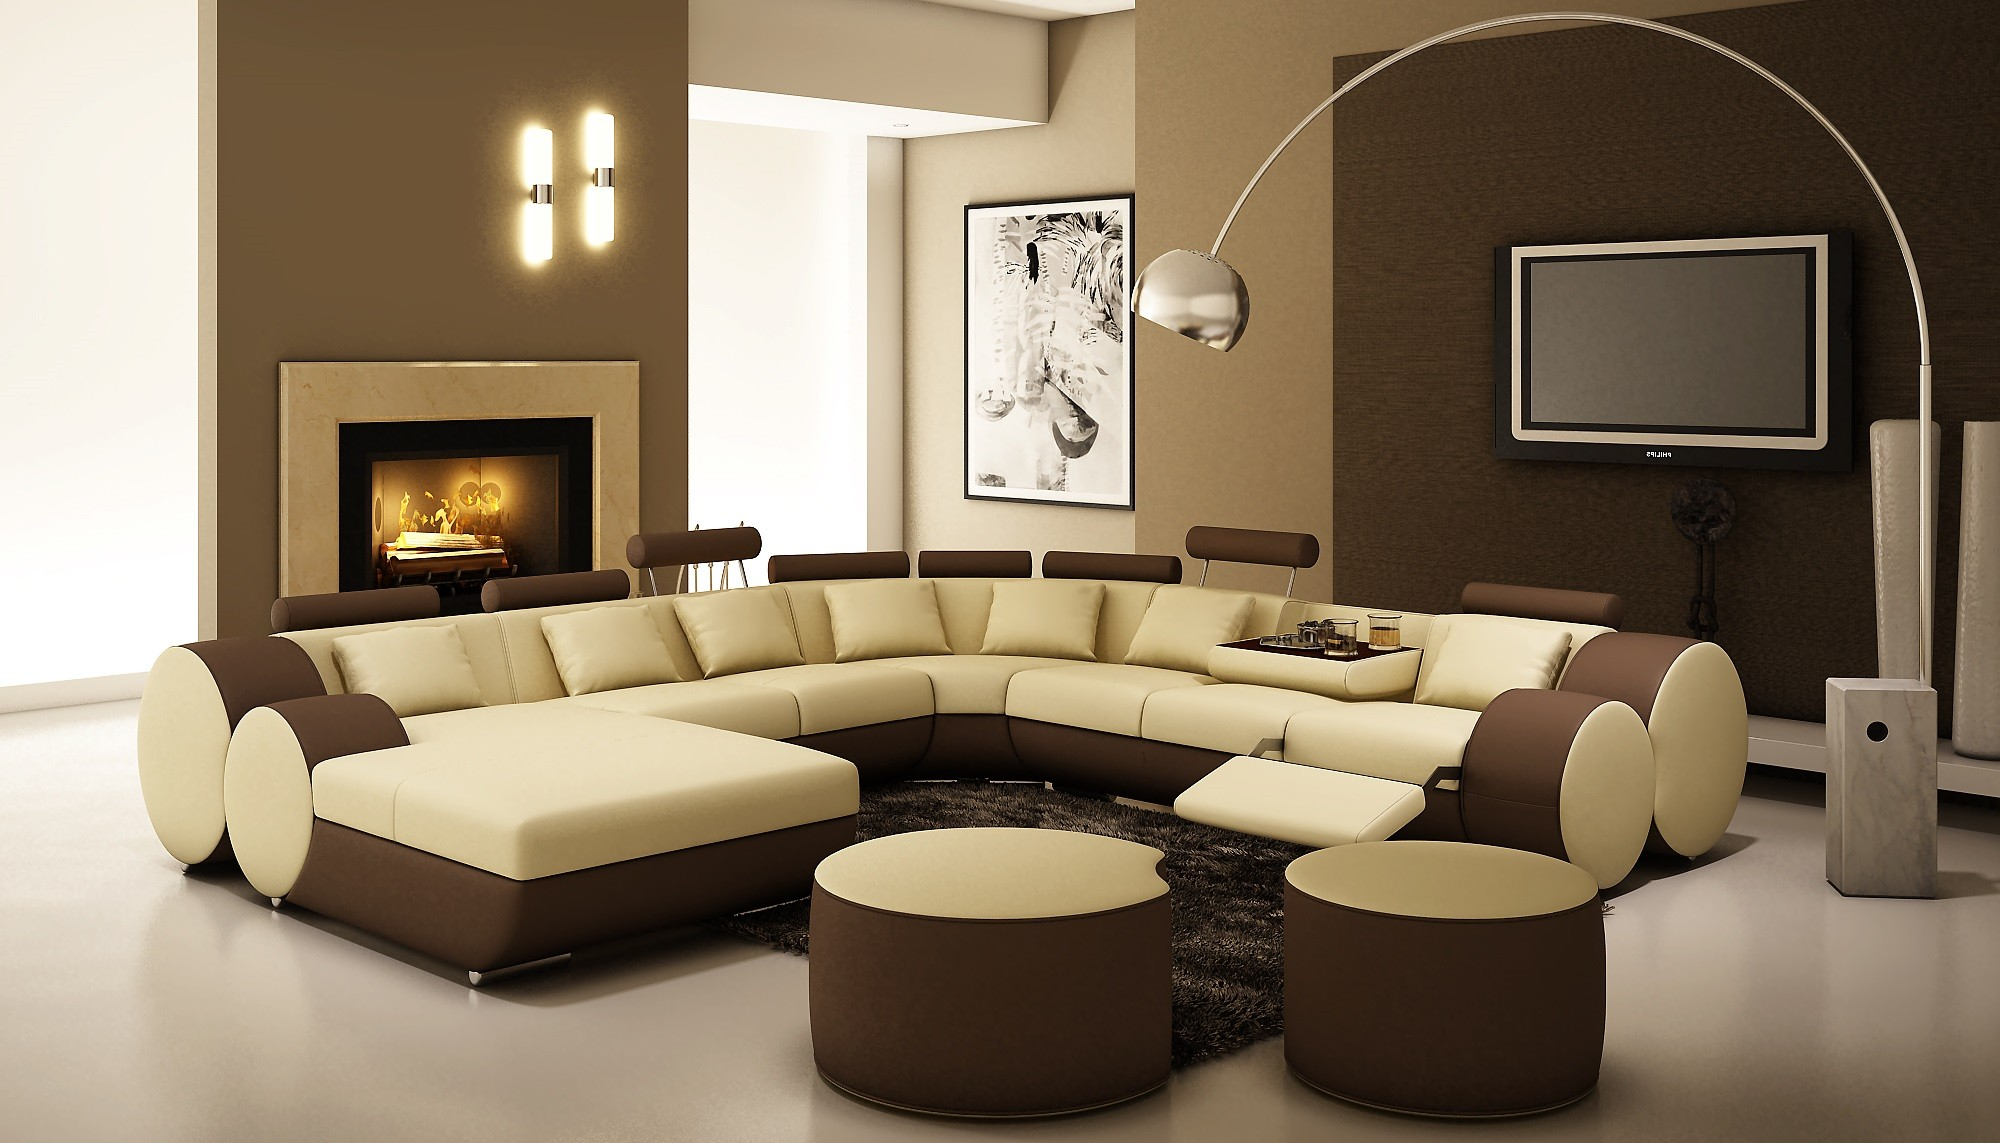 Unique sectional sofas homesfeed for Idee deco salon taupe